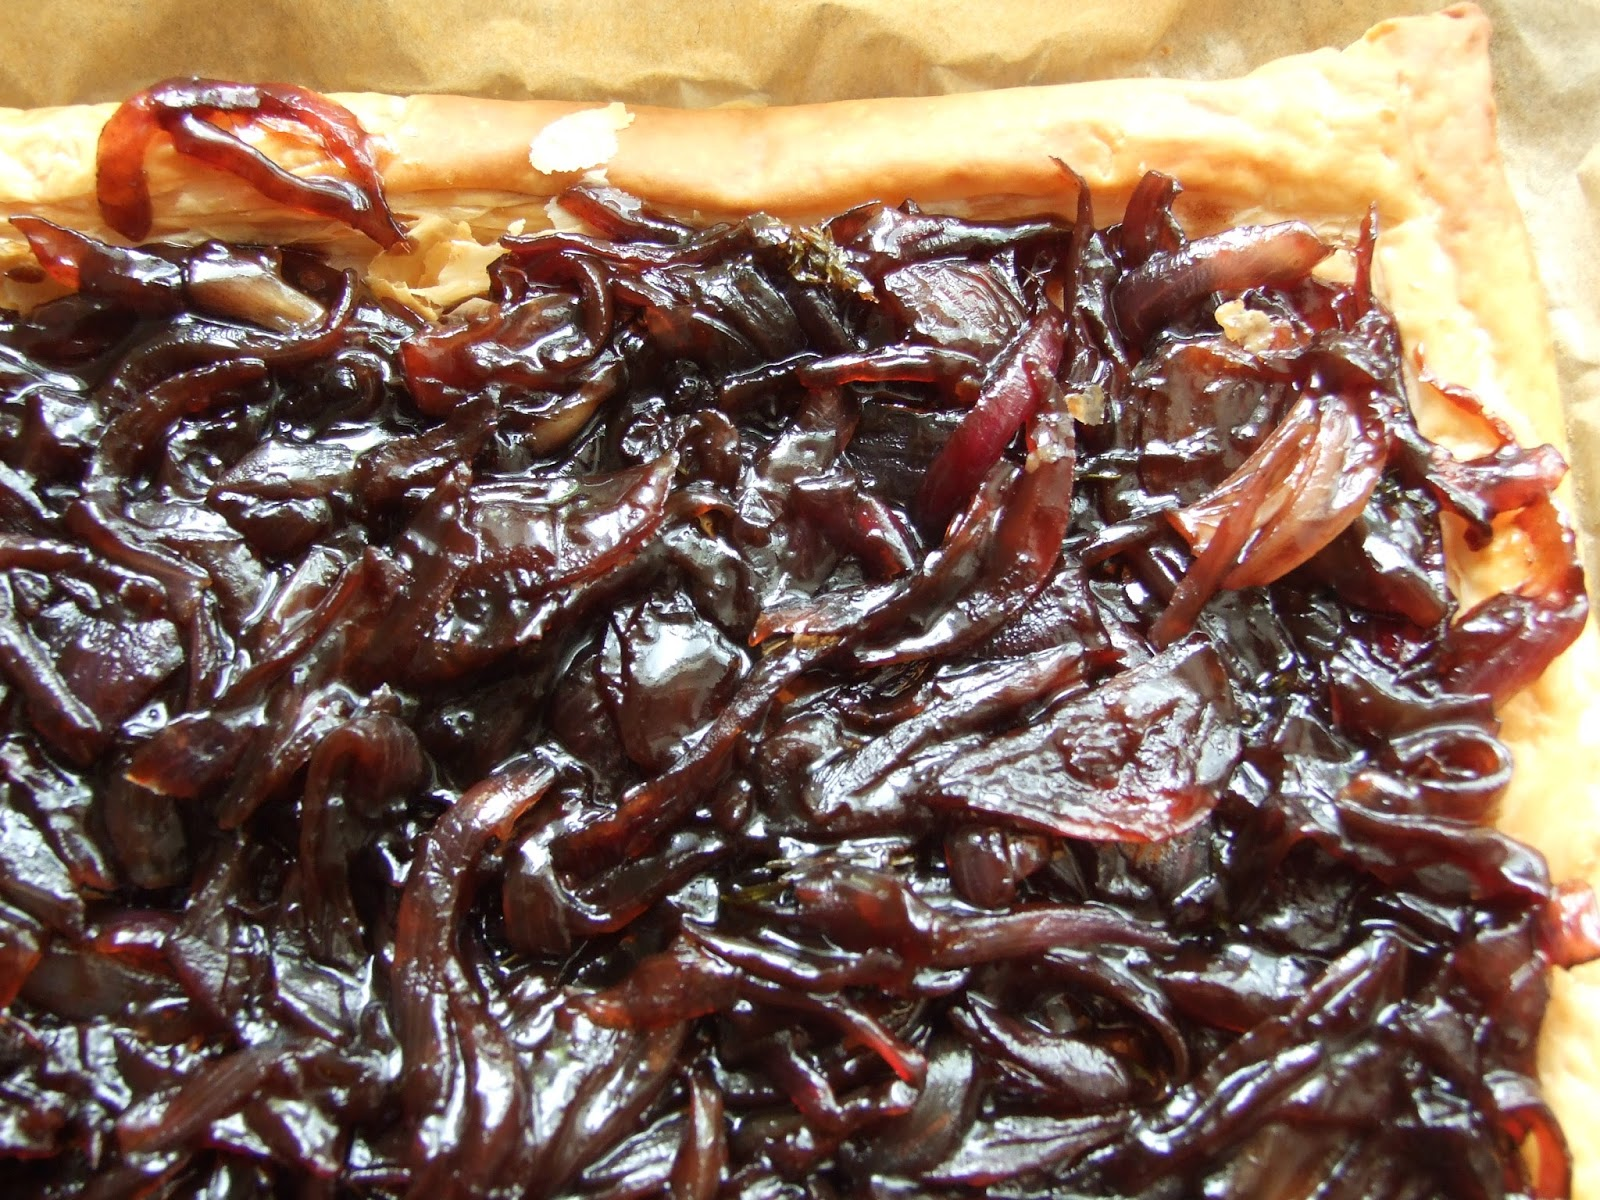 Holly's Pantry: Red Onion Marmalade and Blue Cheese Tart